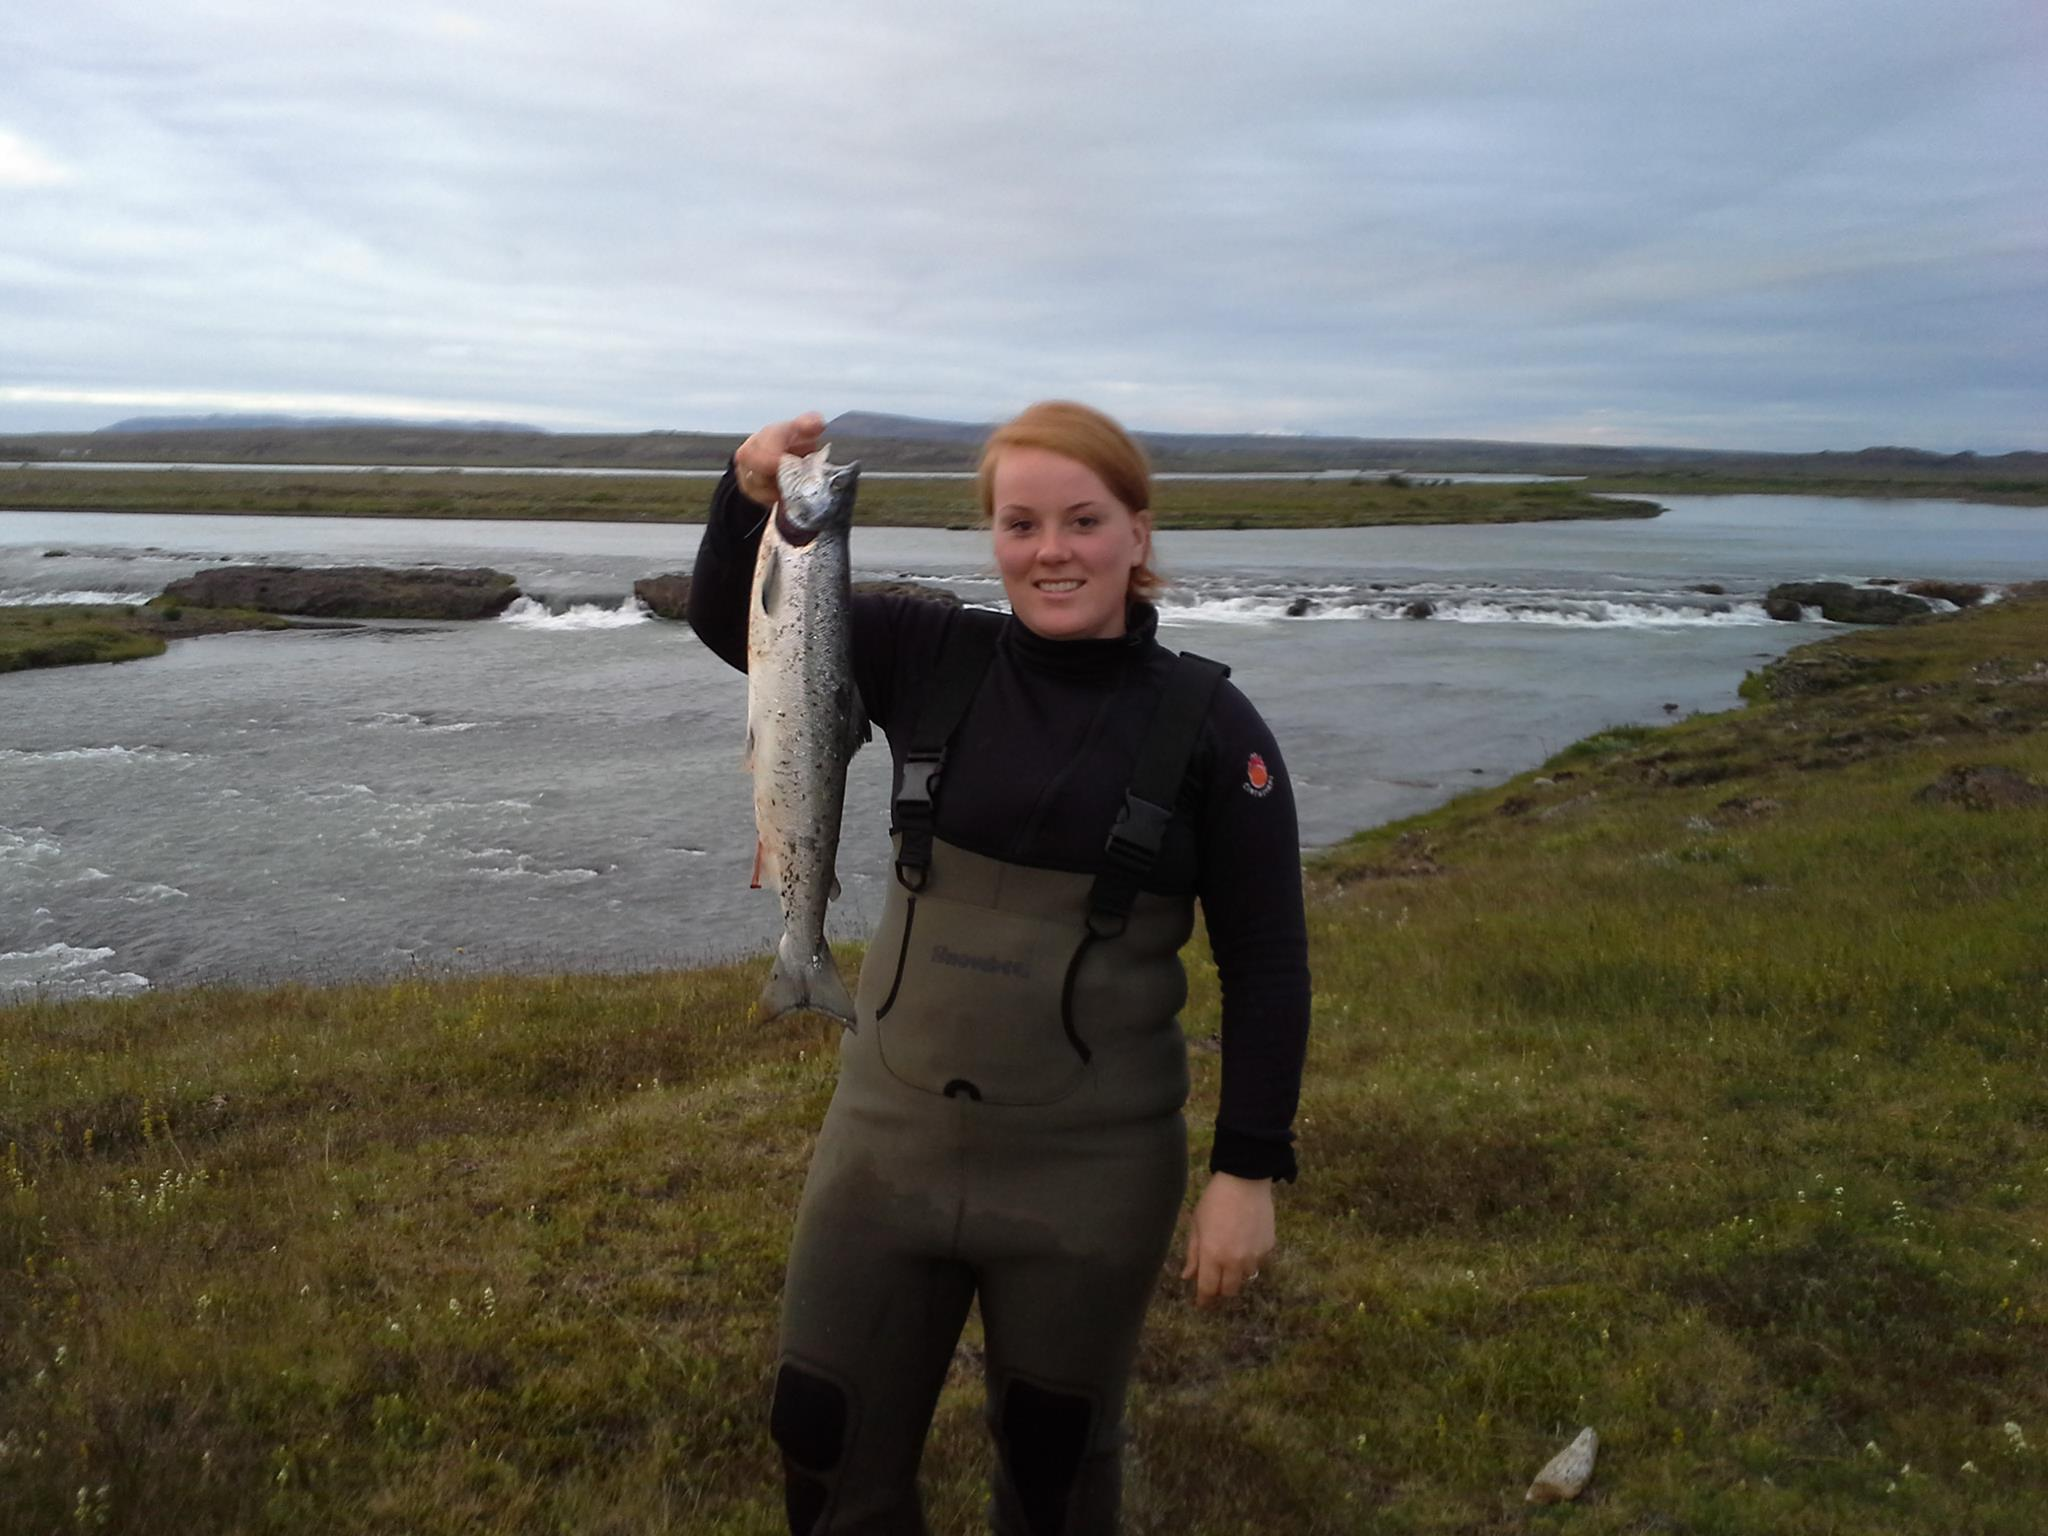 Valgerdur fishing in South Iceland